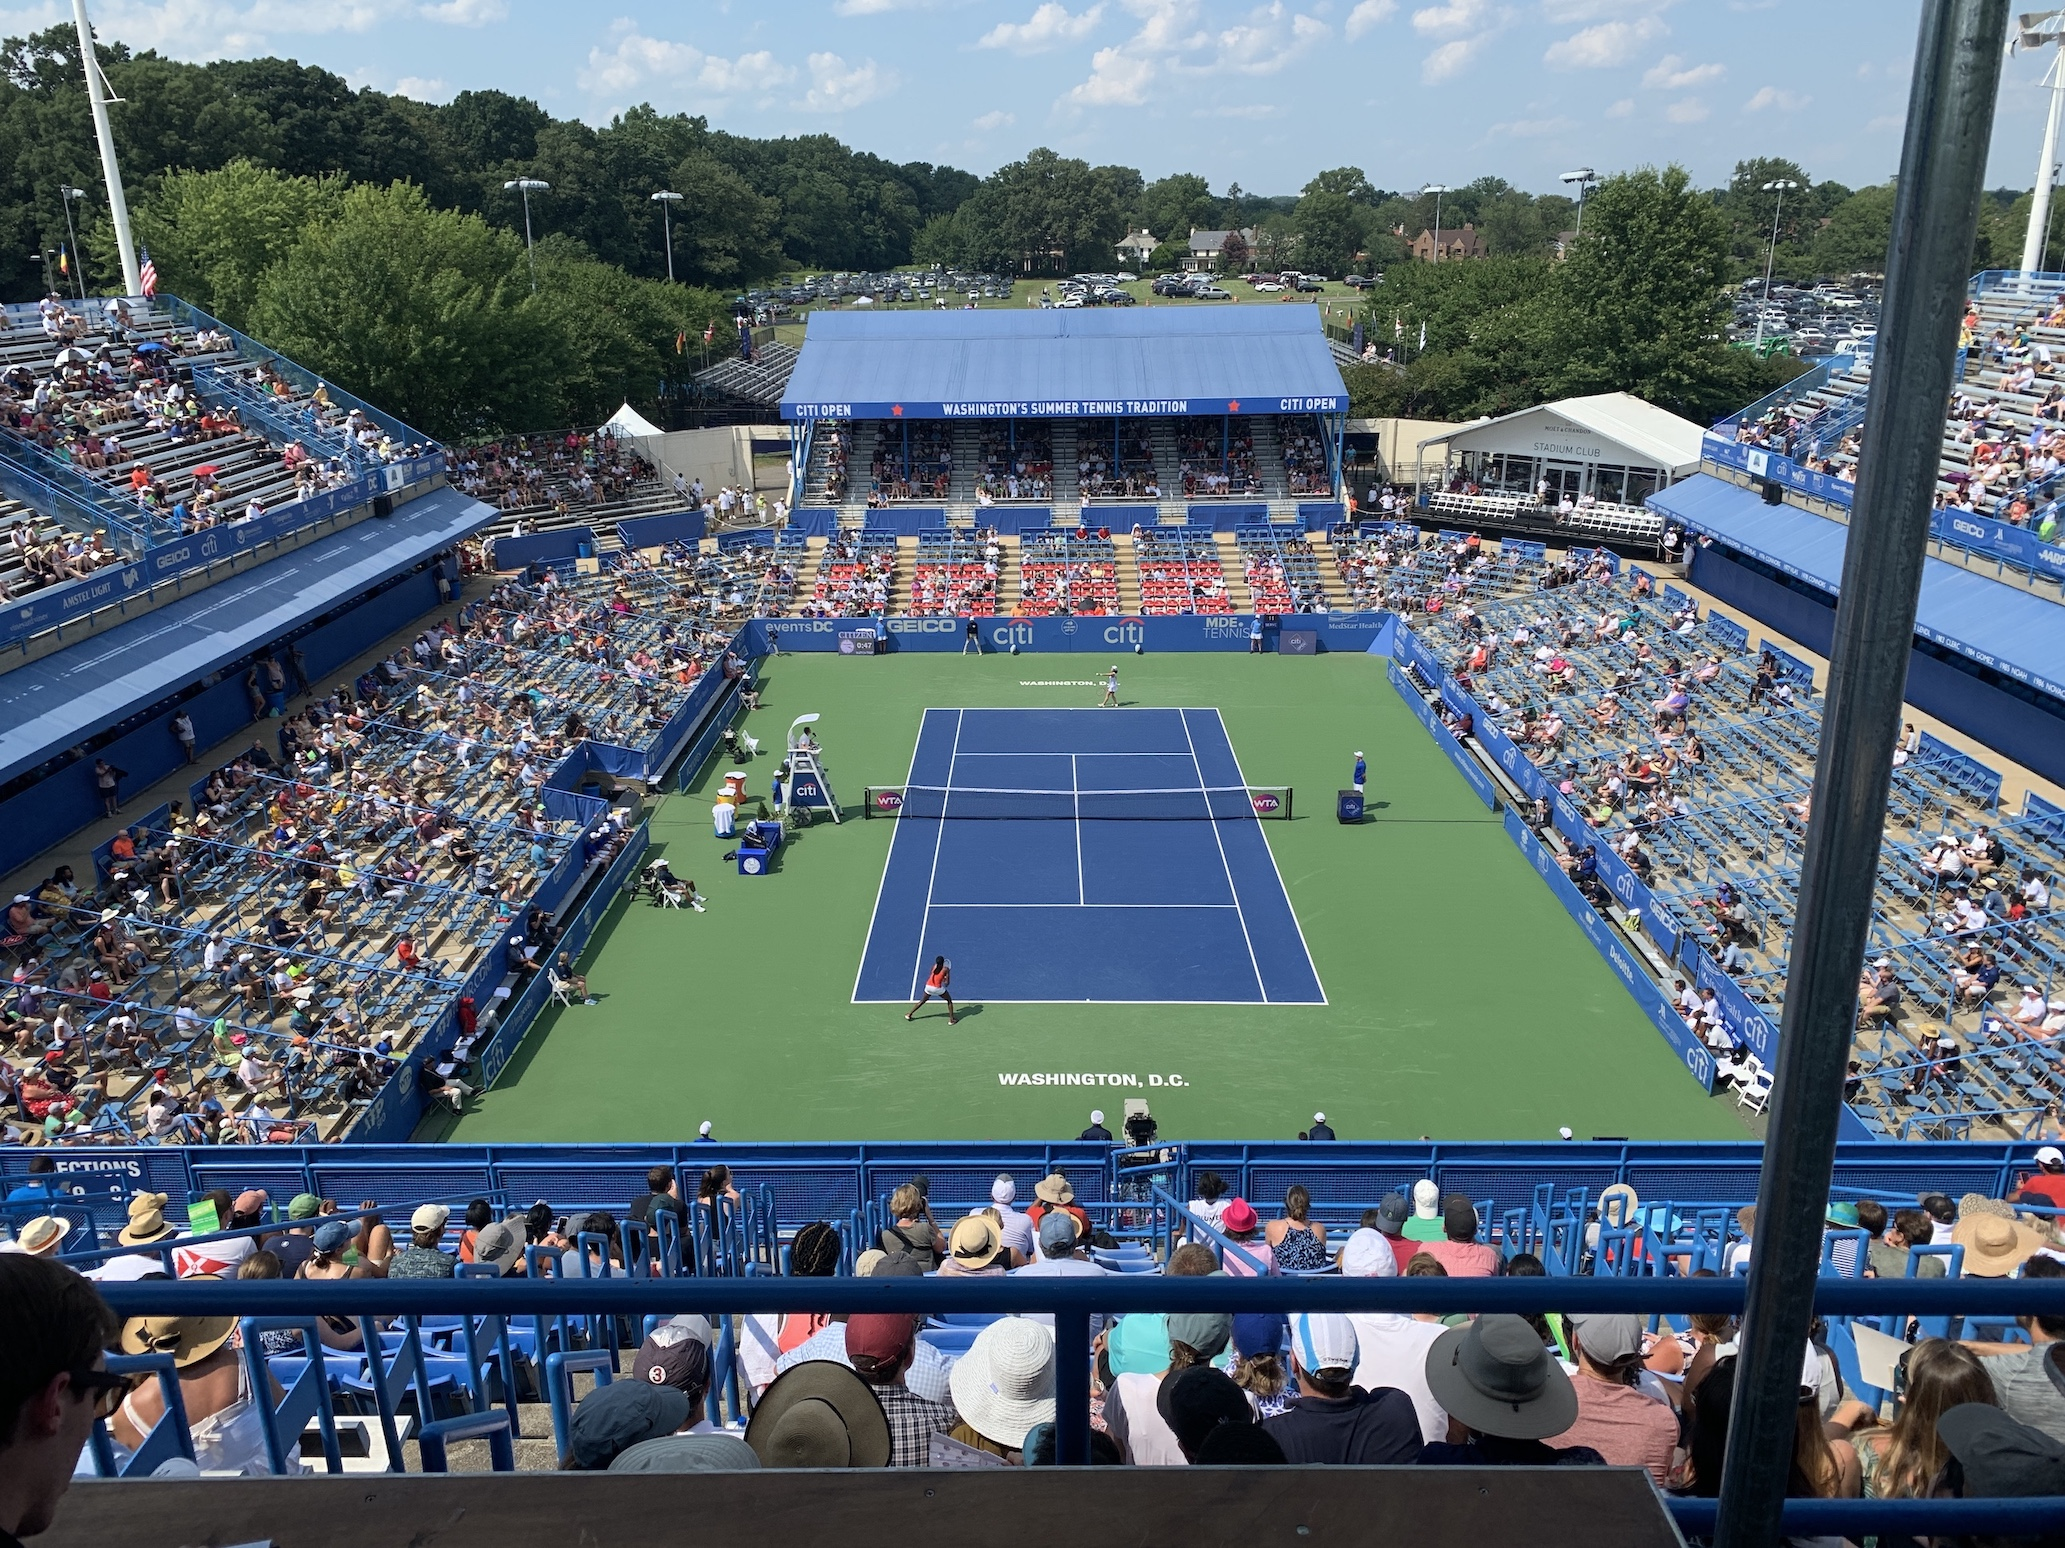 Rising Star Teen Journalist Reflects on Citi Open Experience